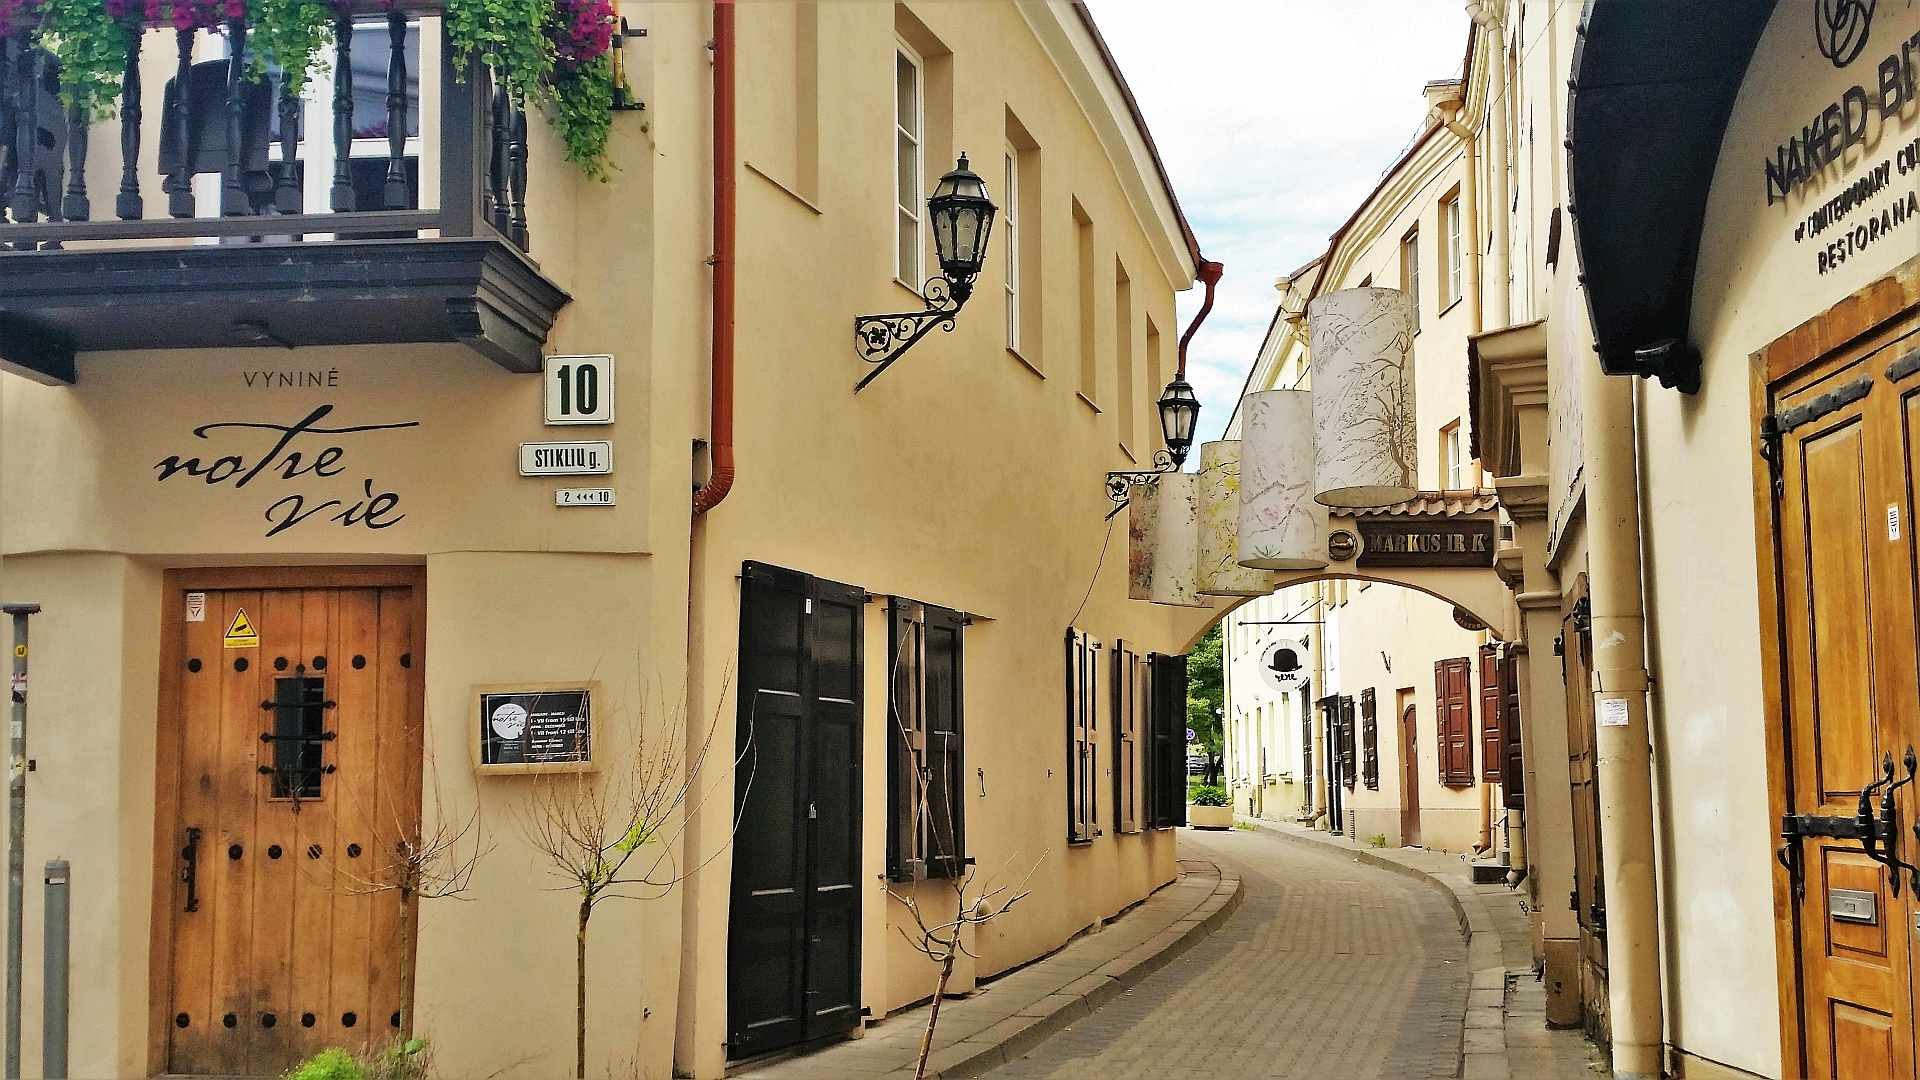 Street in old town of Vilnius - trivo.ro